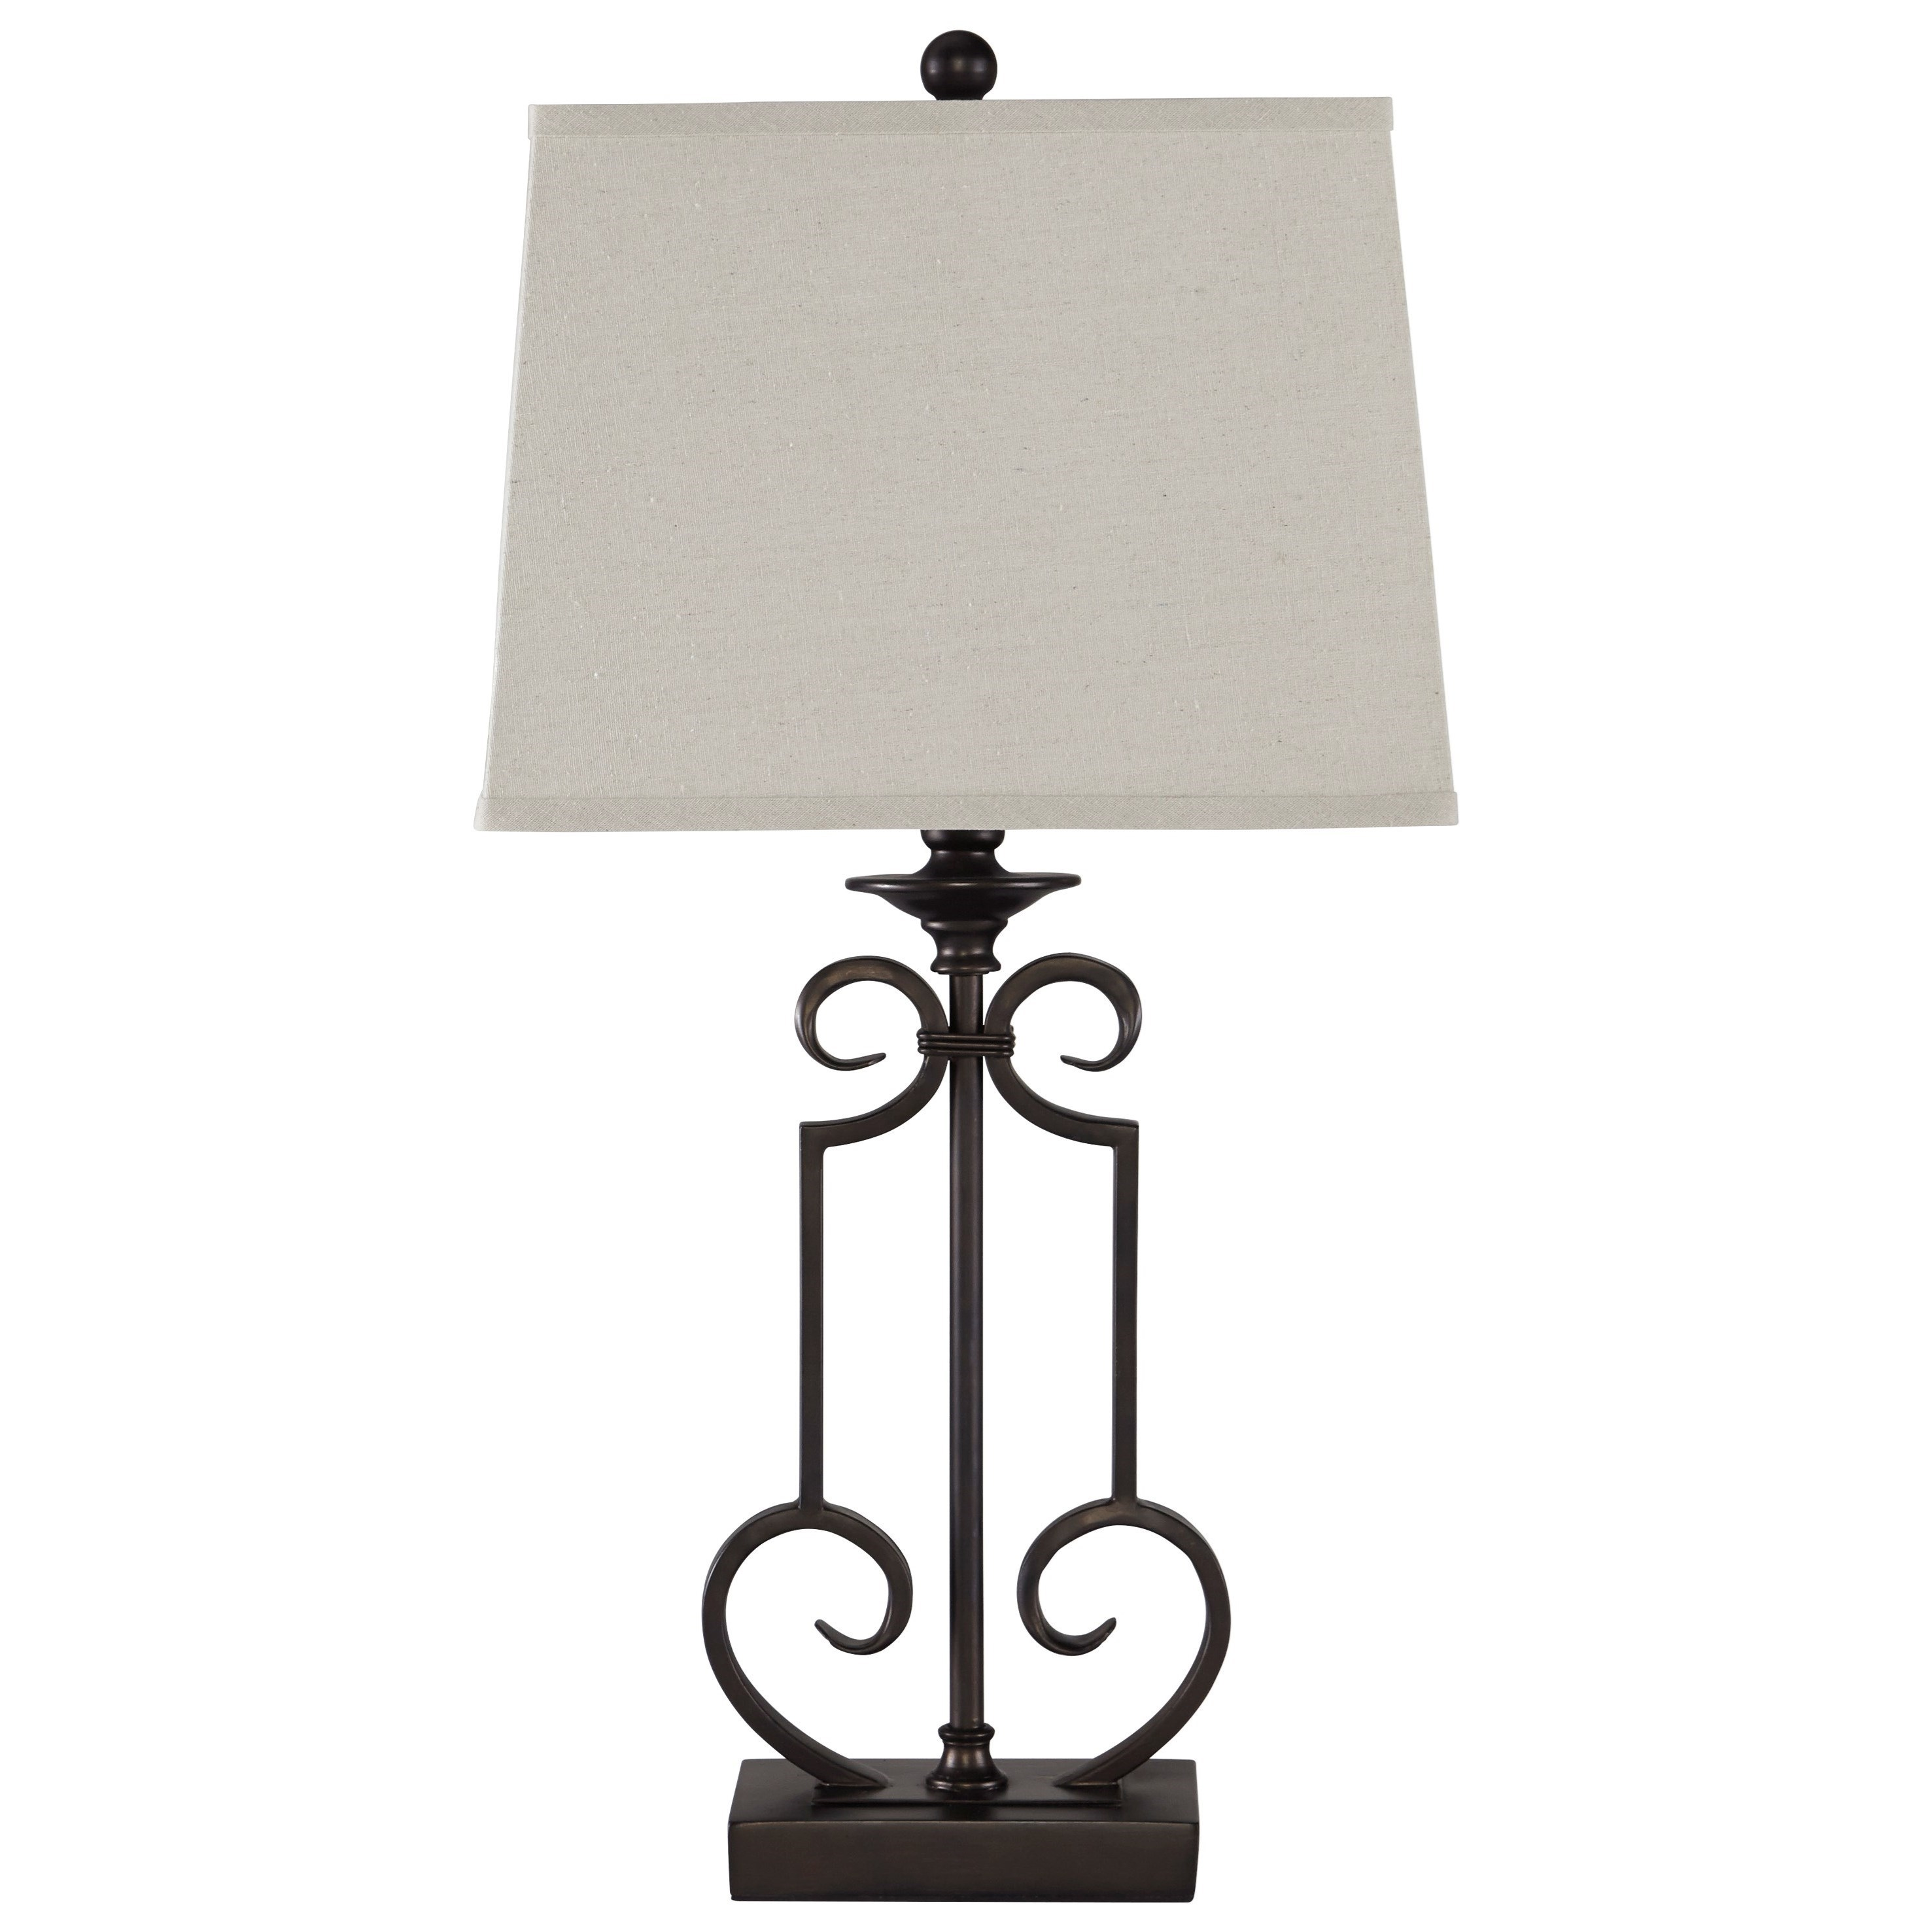 Set of 2 Ainslie Table Lamps